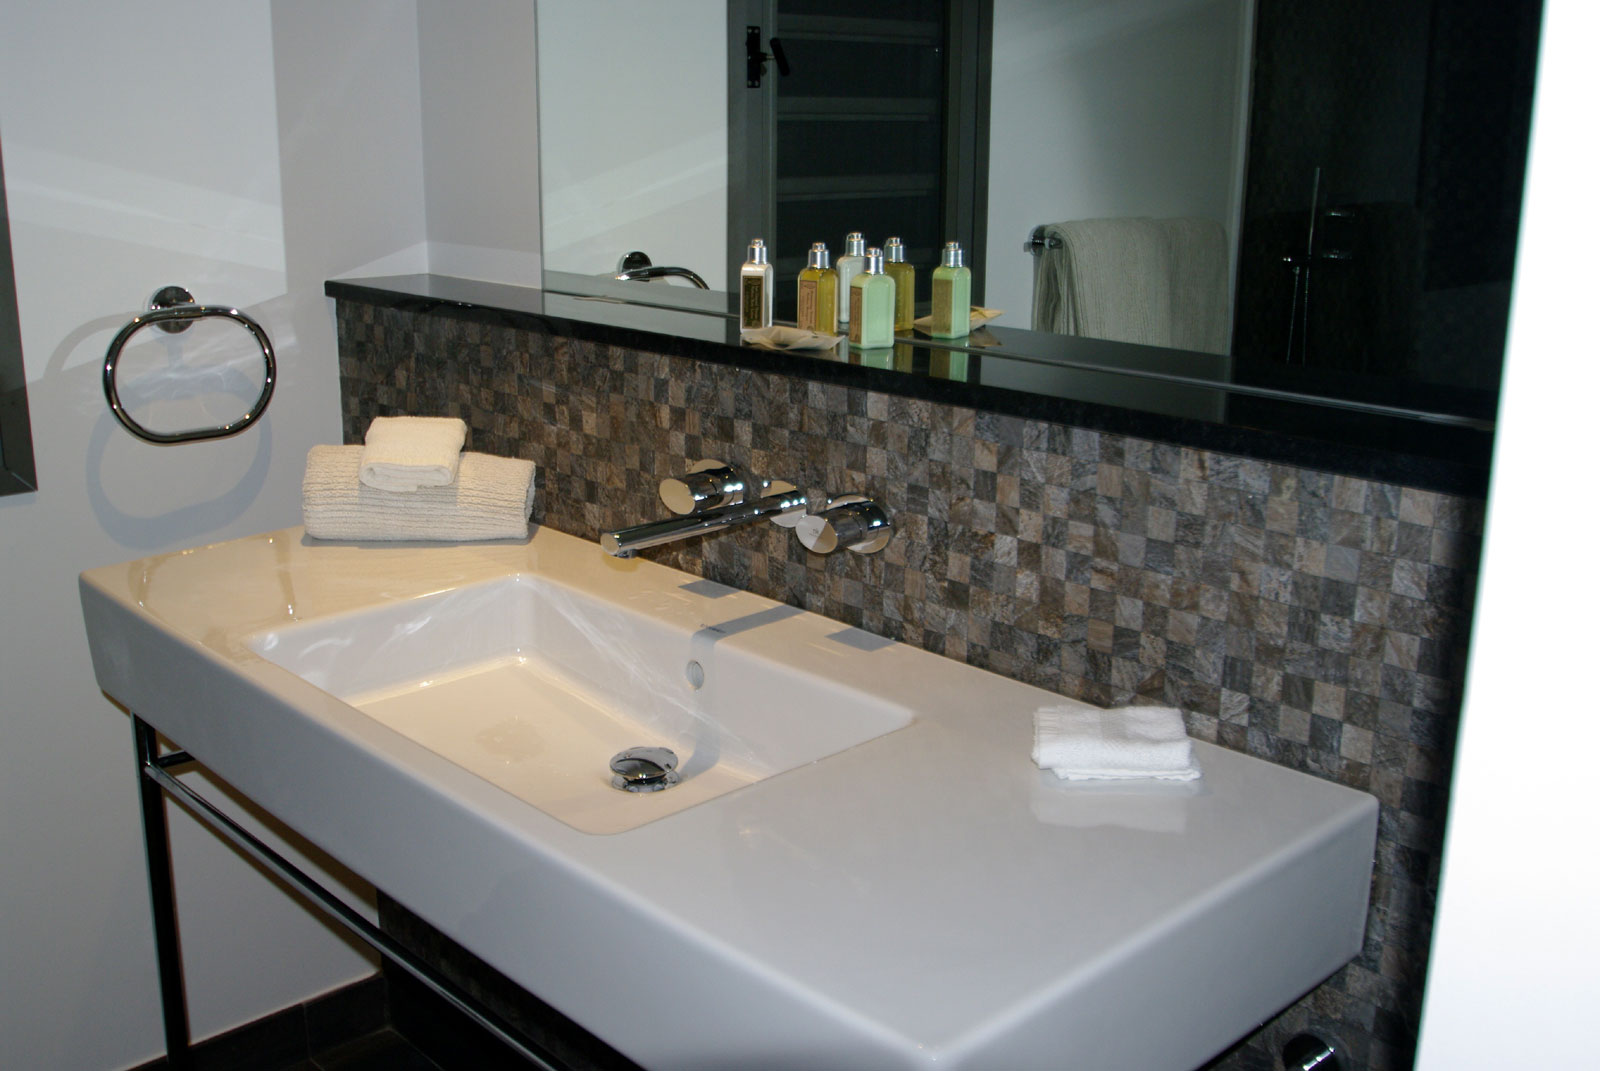 A spacious, modern bathroom at Green Lagoon, Petit Cul de Sac, St. Barts luxury villa rentals, Caribbean.